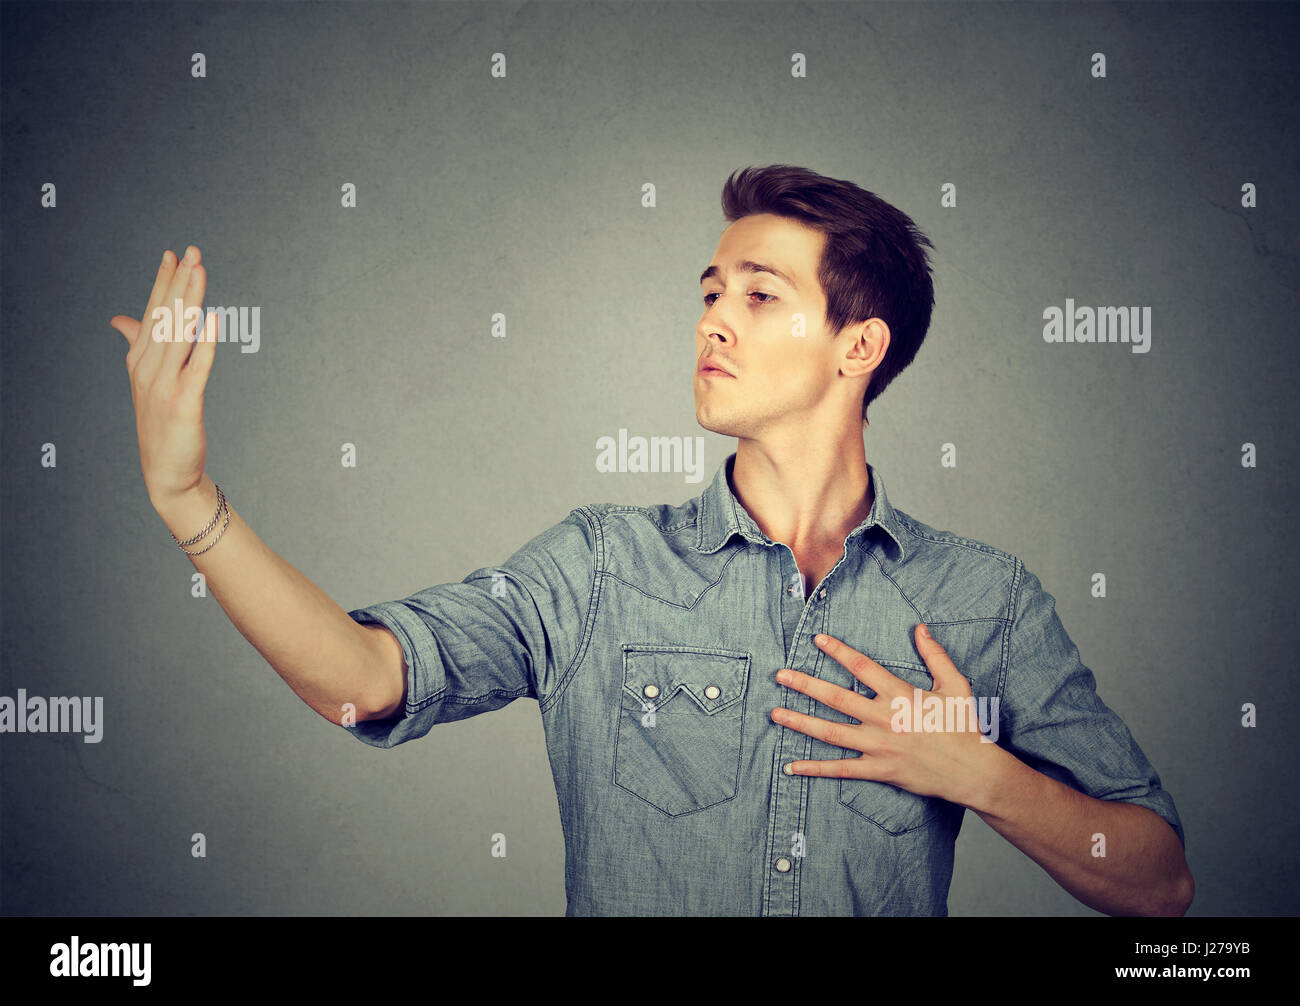 Arrogant bold self important stuck up man with napoleon complex, short man syndrome isolated on gray background. - Stock Image